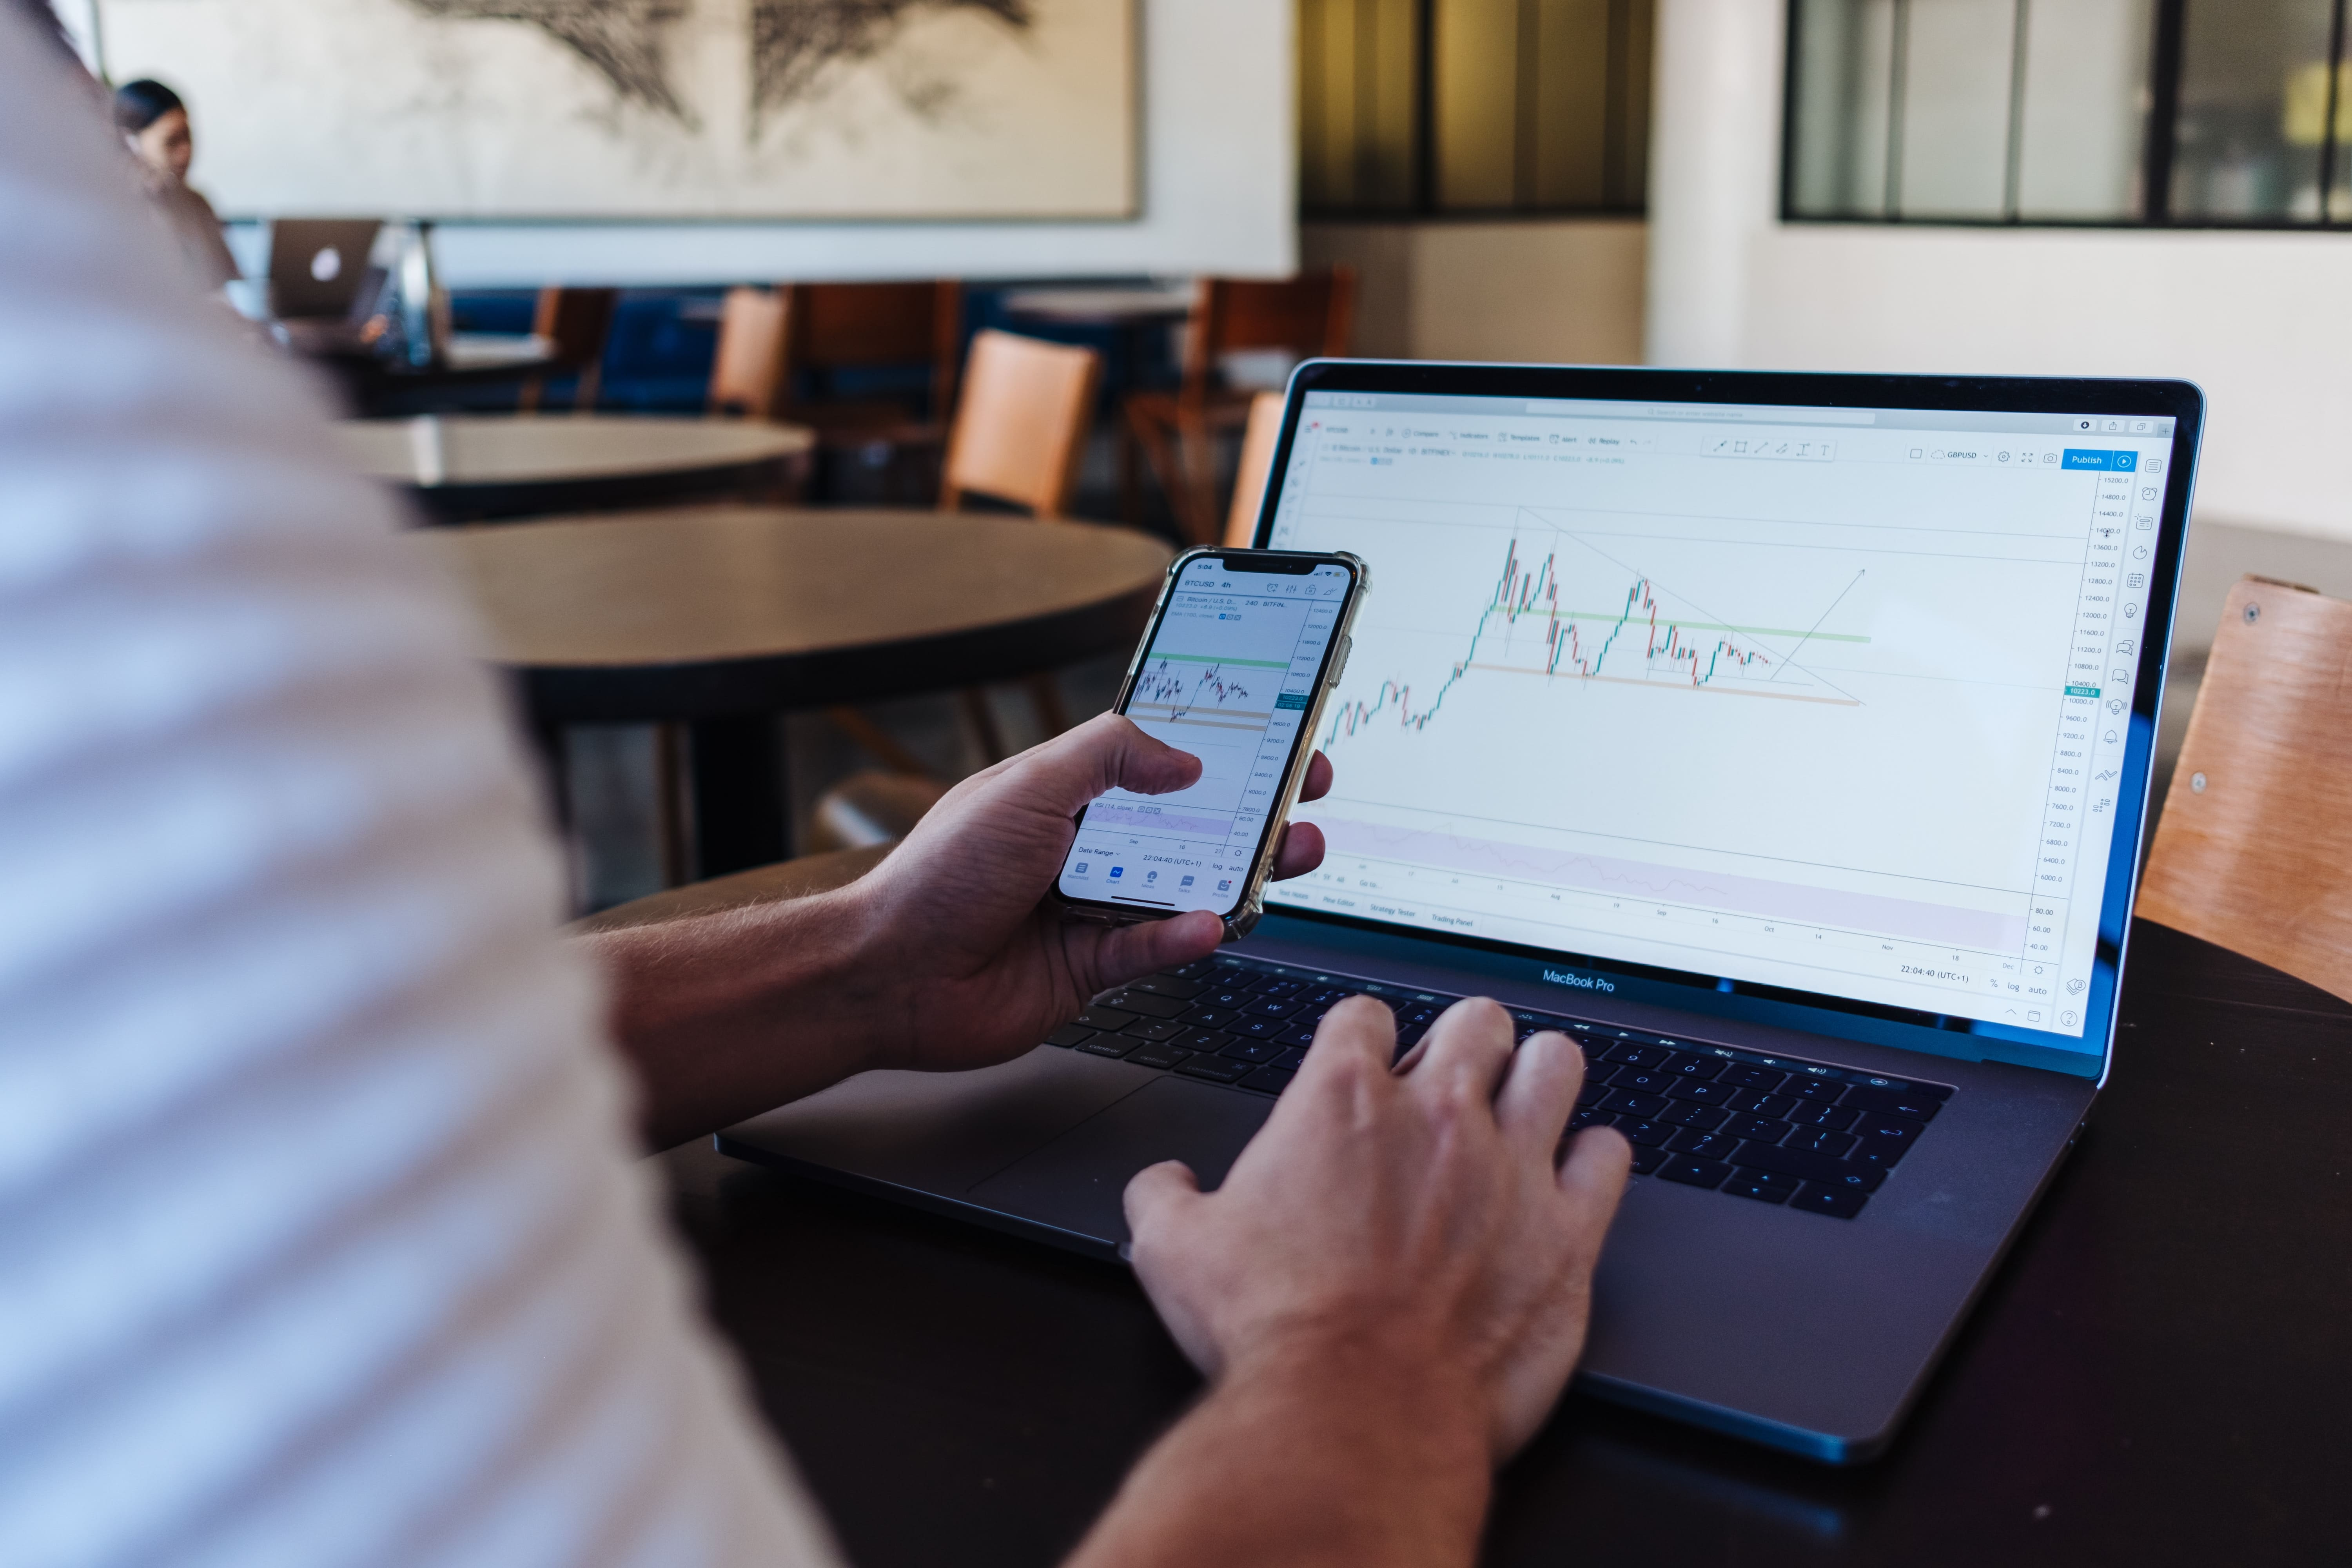 man-on-laptop-stocks-with-iphone-robo-advisor-velox-clearing